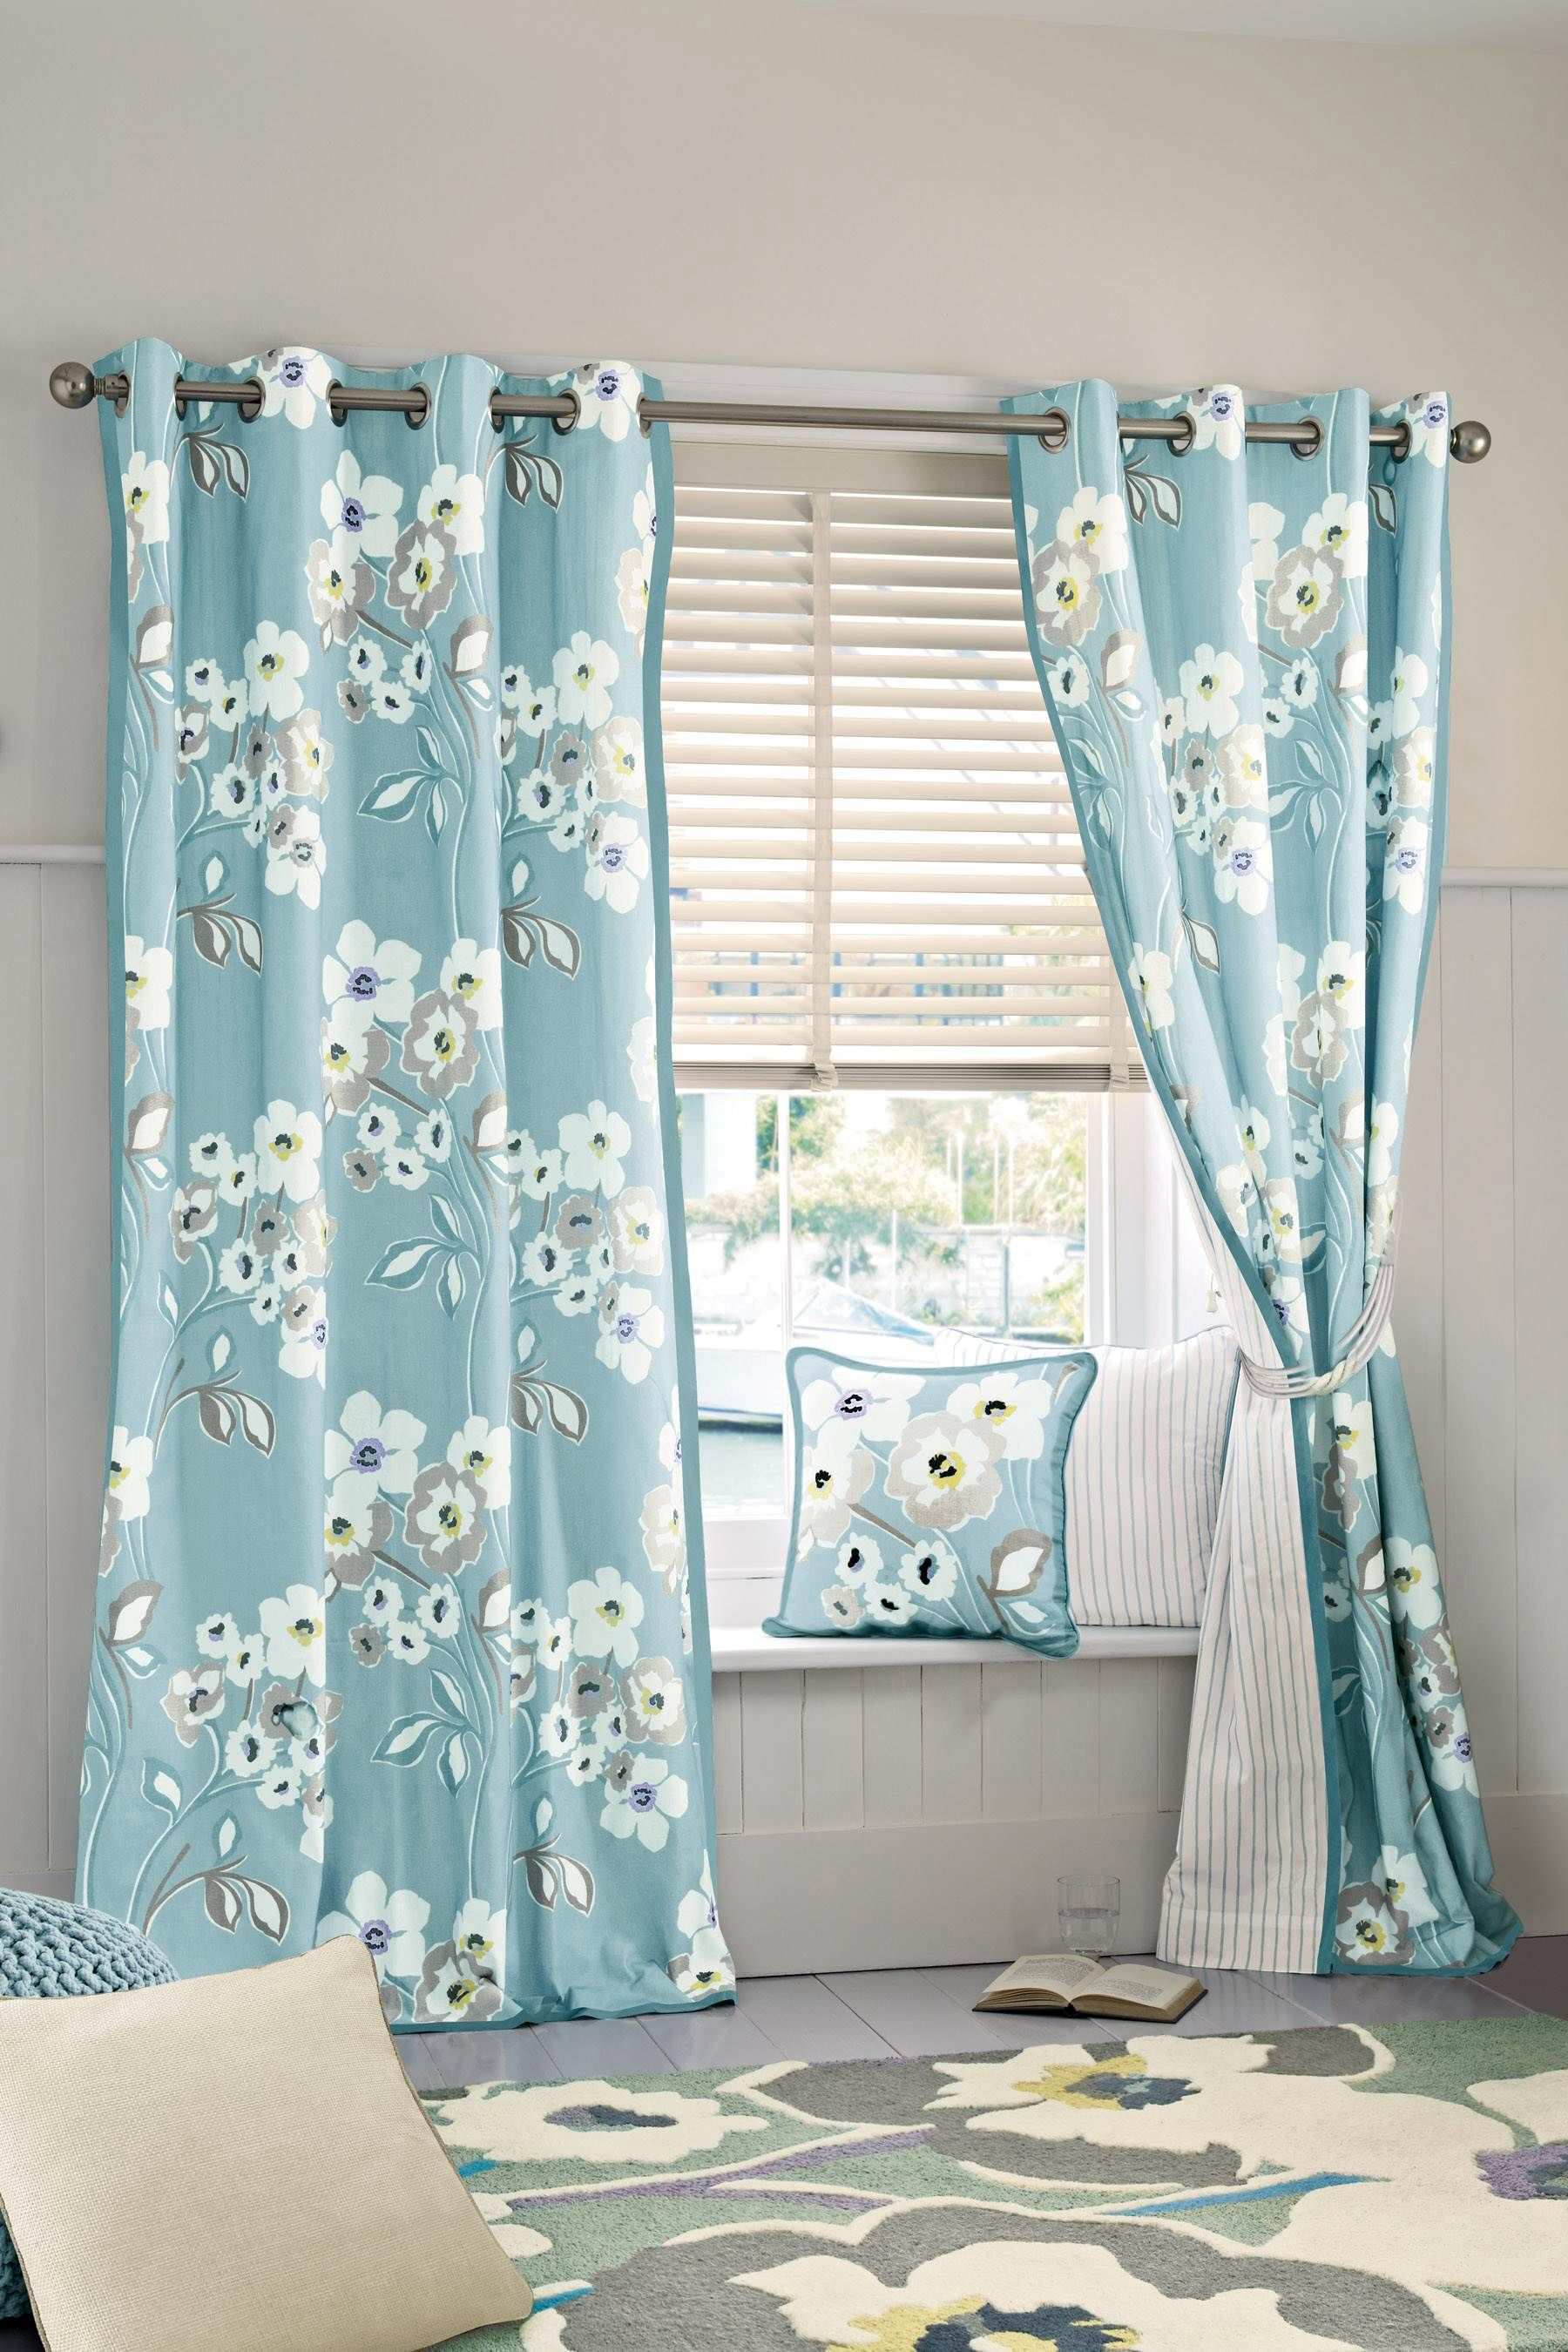 Next Bedroom Curtains Inspiration For A Pretty Floral Bedroom Soft Blue And White